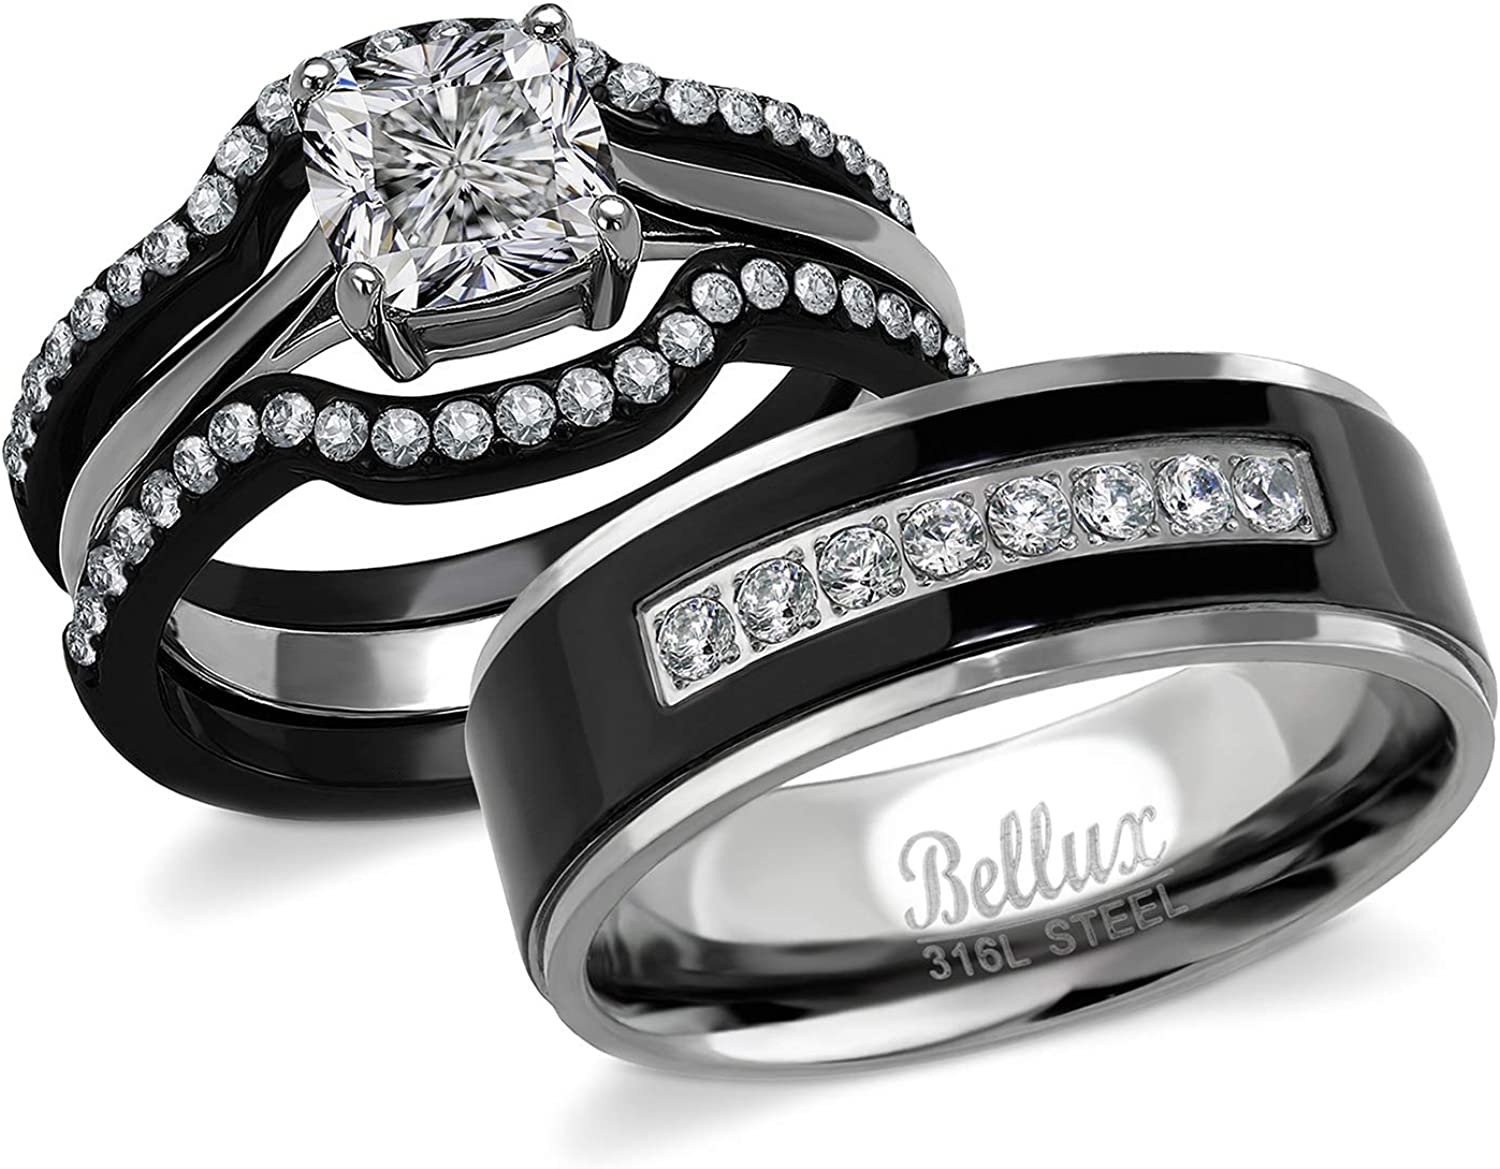 Bellux His and Hers Engagement Rings for Women - Wedding Rings for Women -  Couples Rings - Promise Rings for Couples - Stainless Steel 9.9 Carats